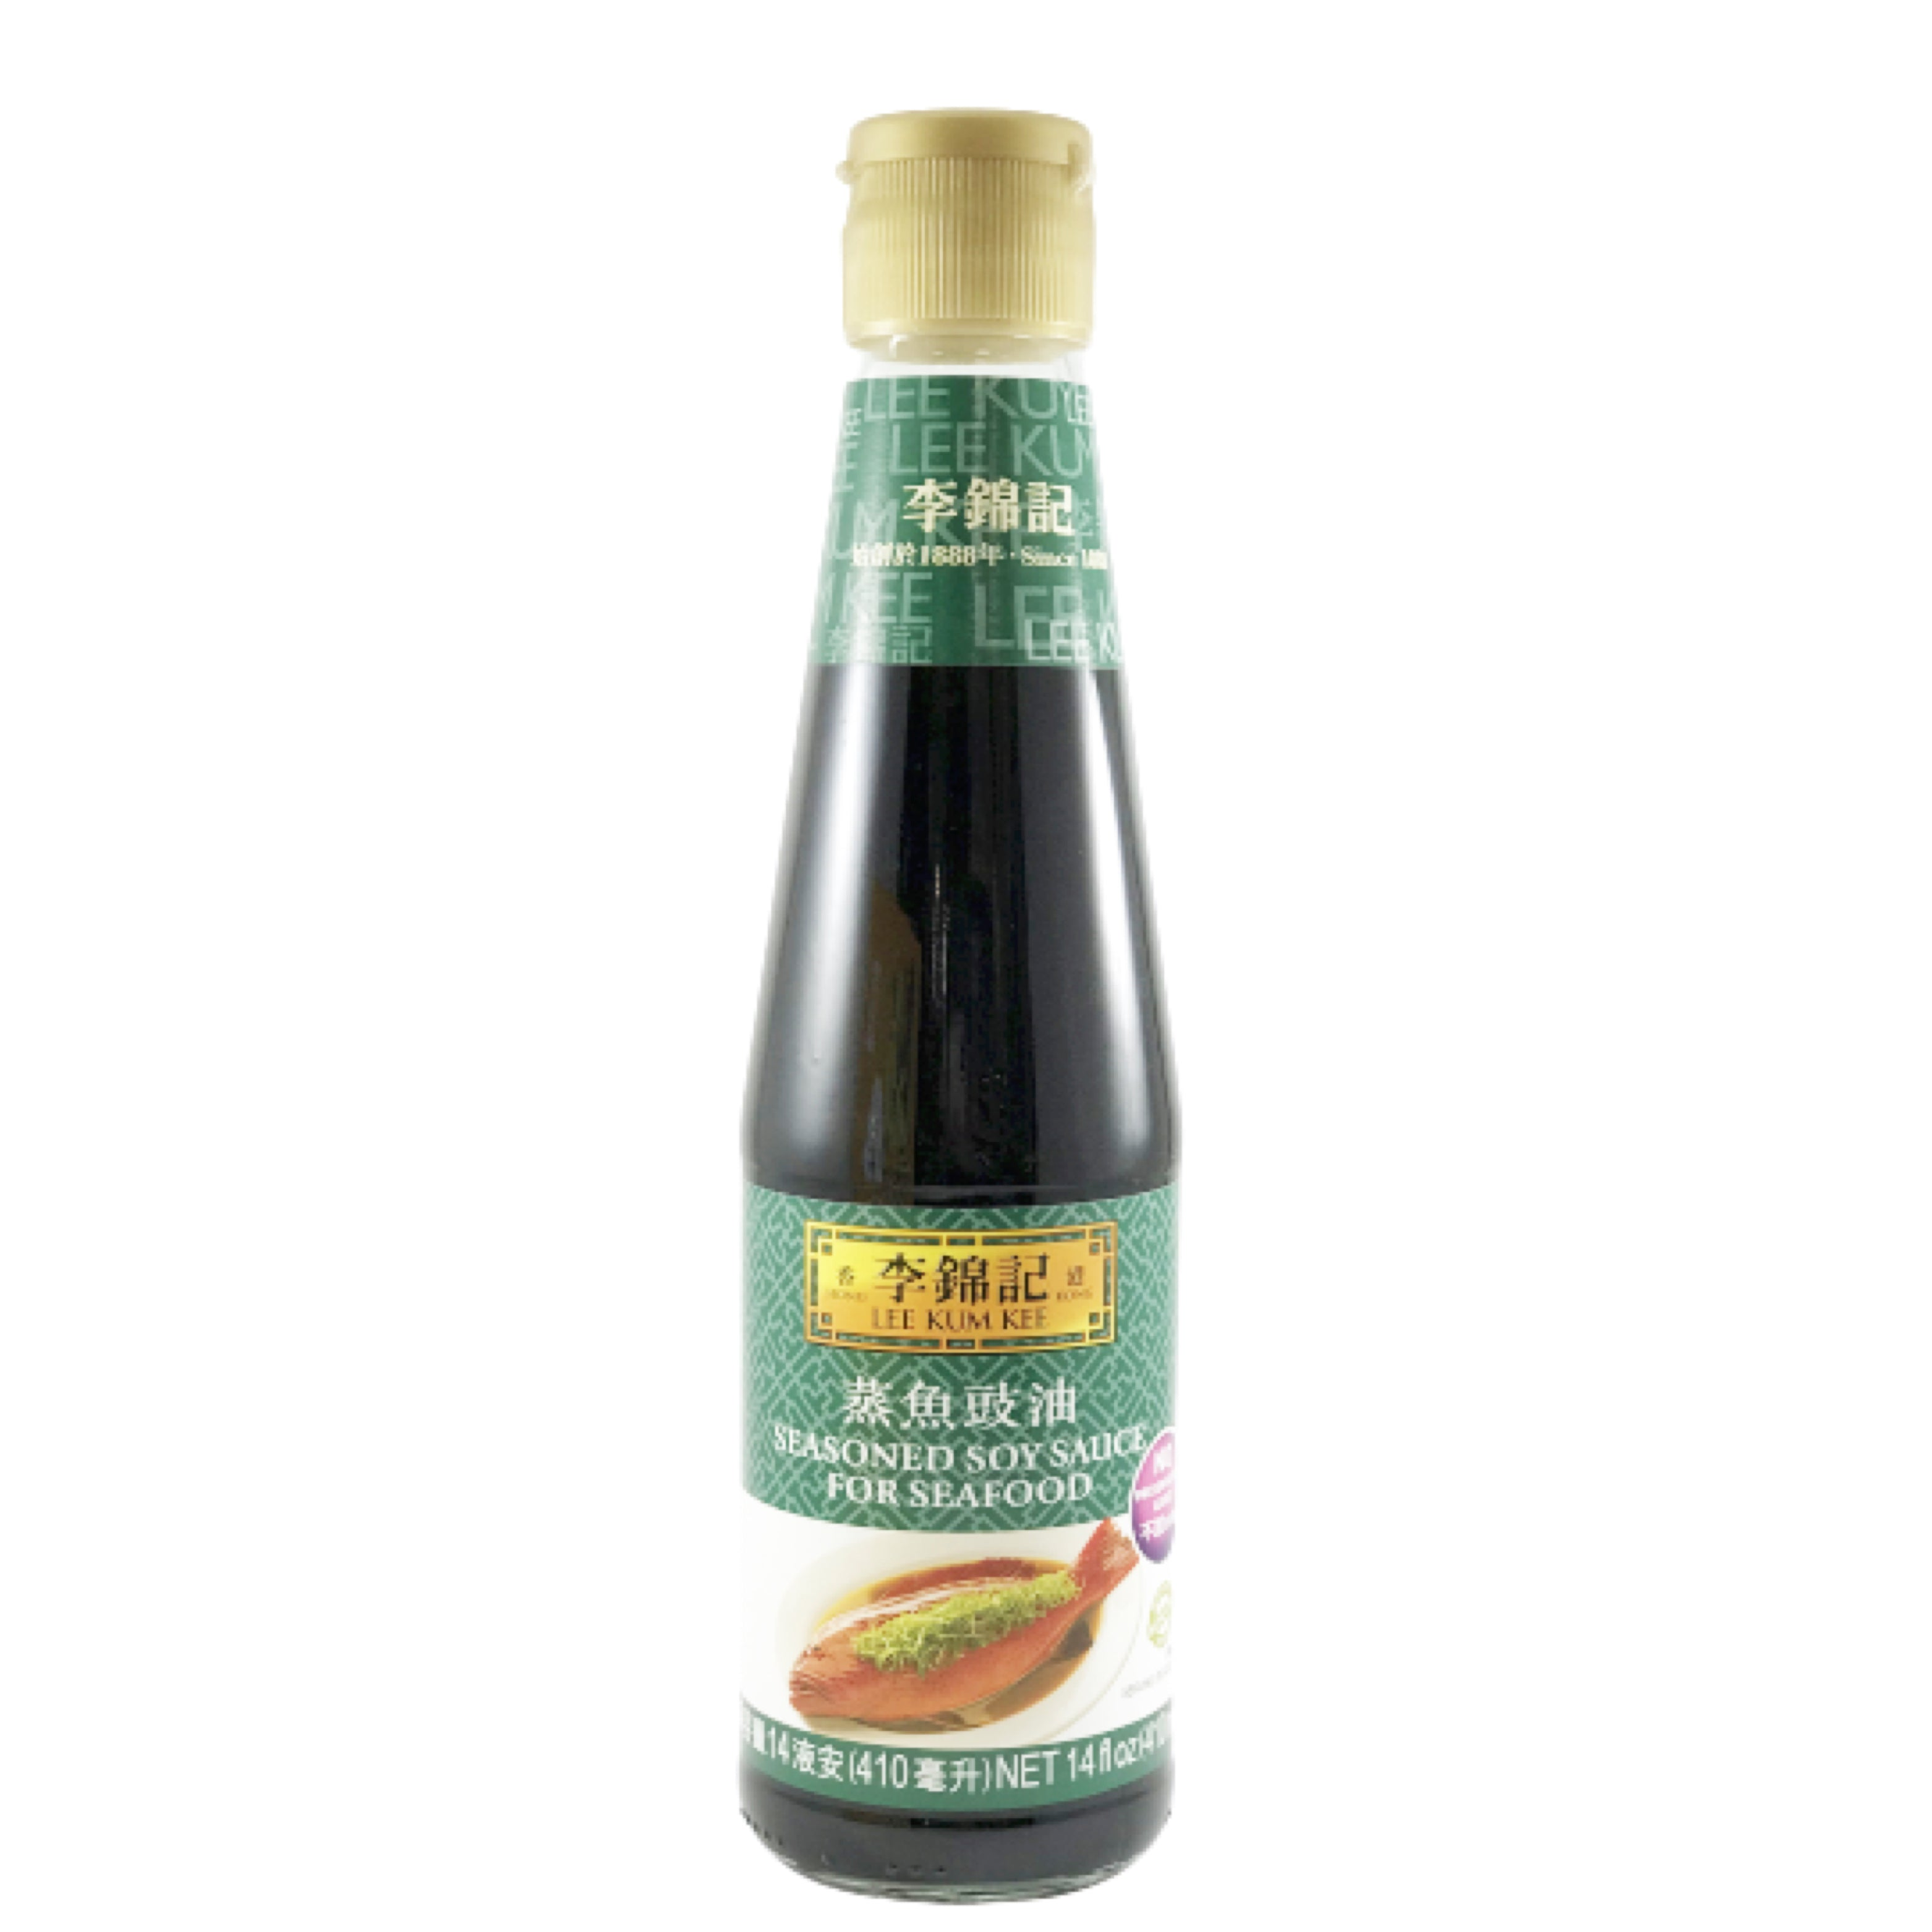 Lee Kum Kee Seasoned Soy Sauce For Seafood 李錦記 蒸魚䜴油 14oz